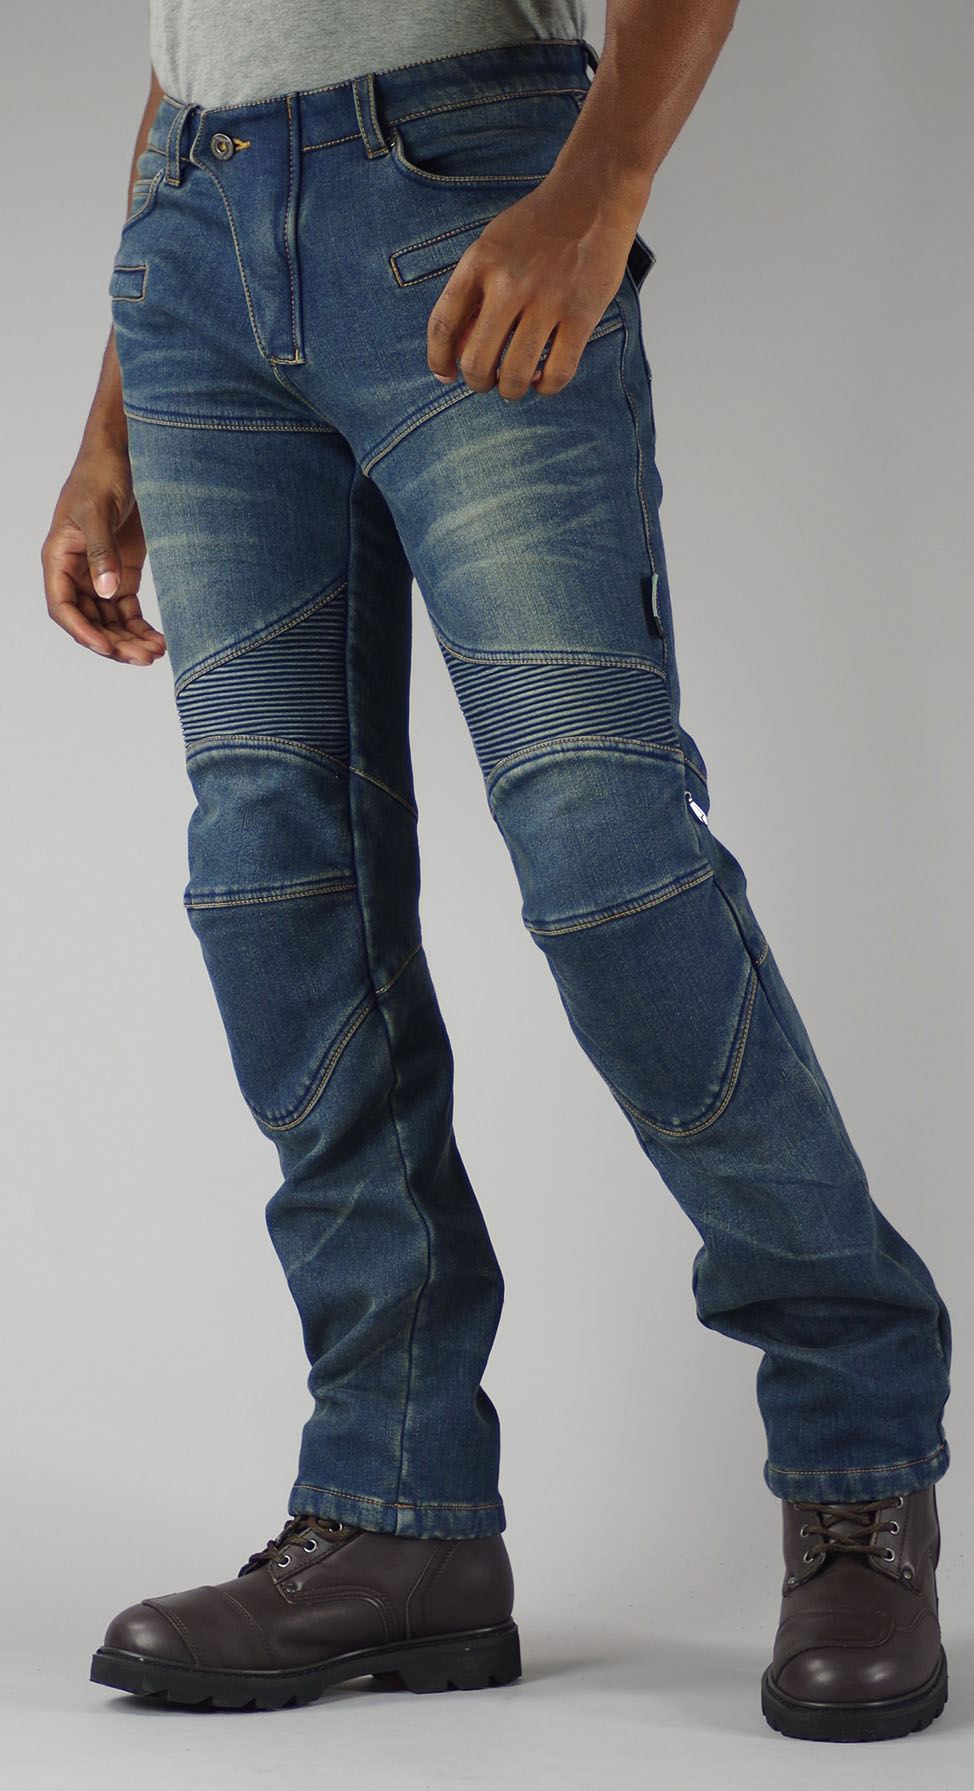 KOMINE WJ-921S Super Fit Warm Denim Jeans Ladies